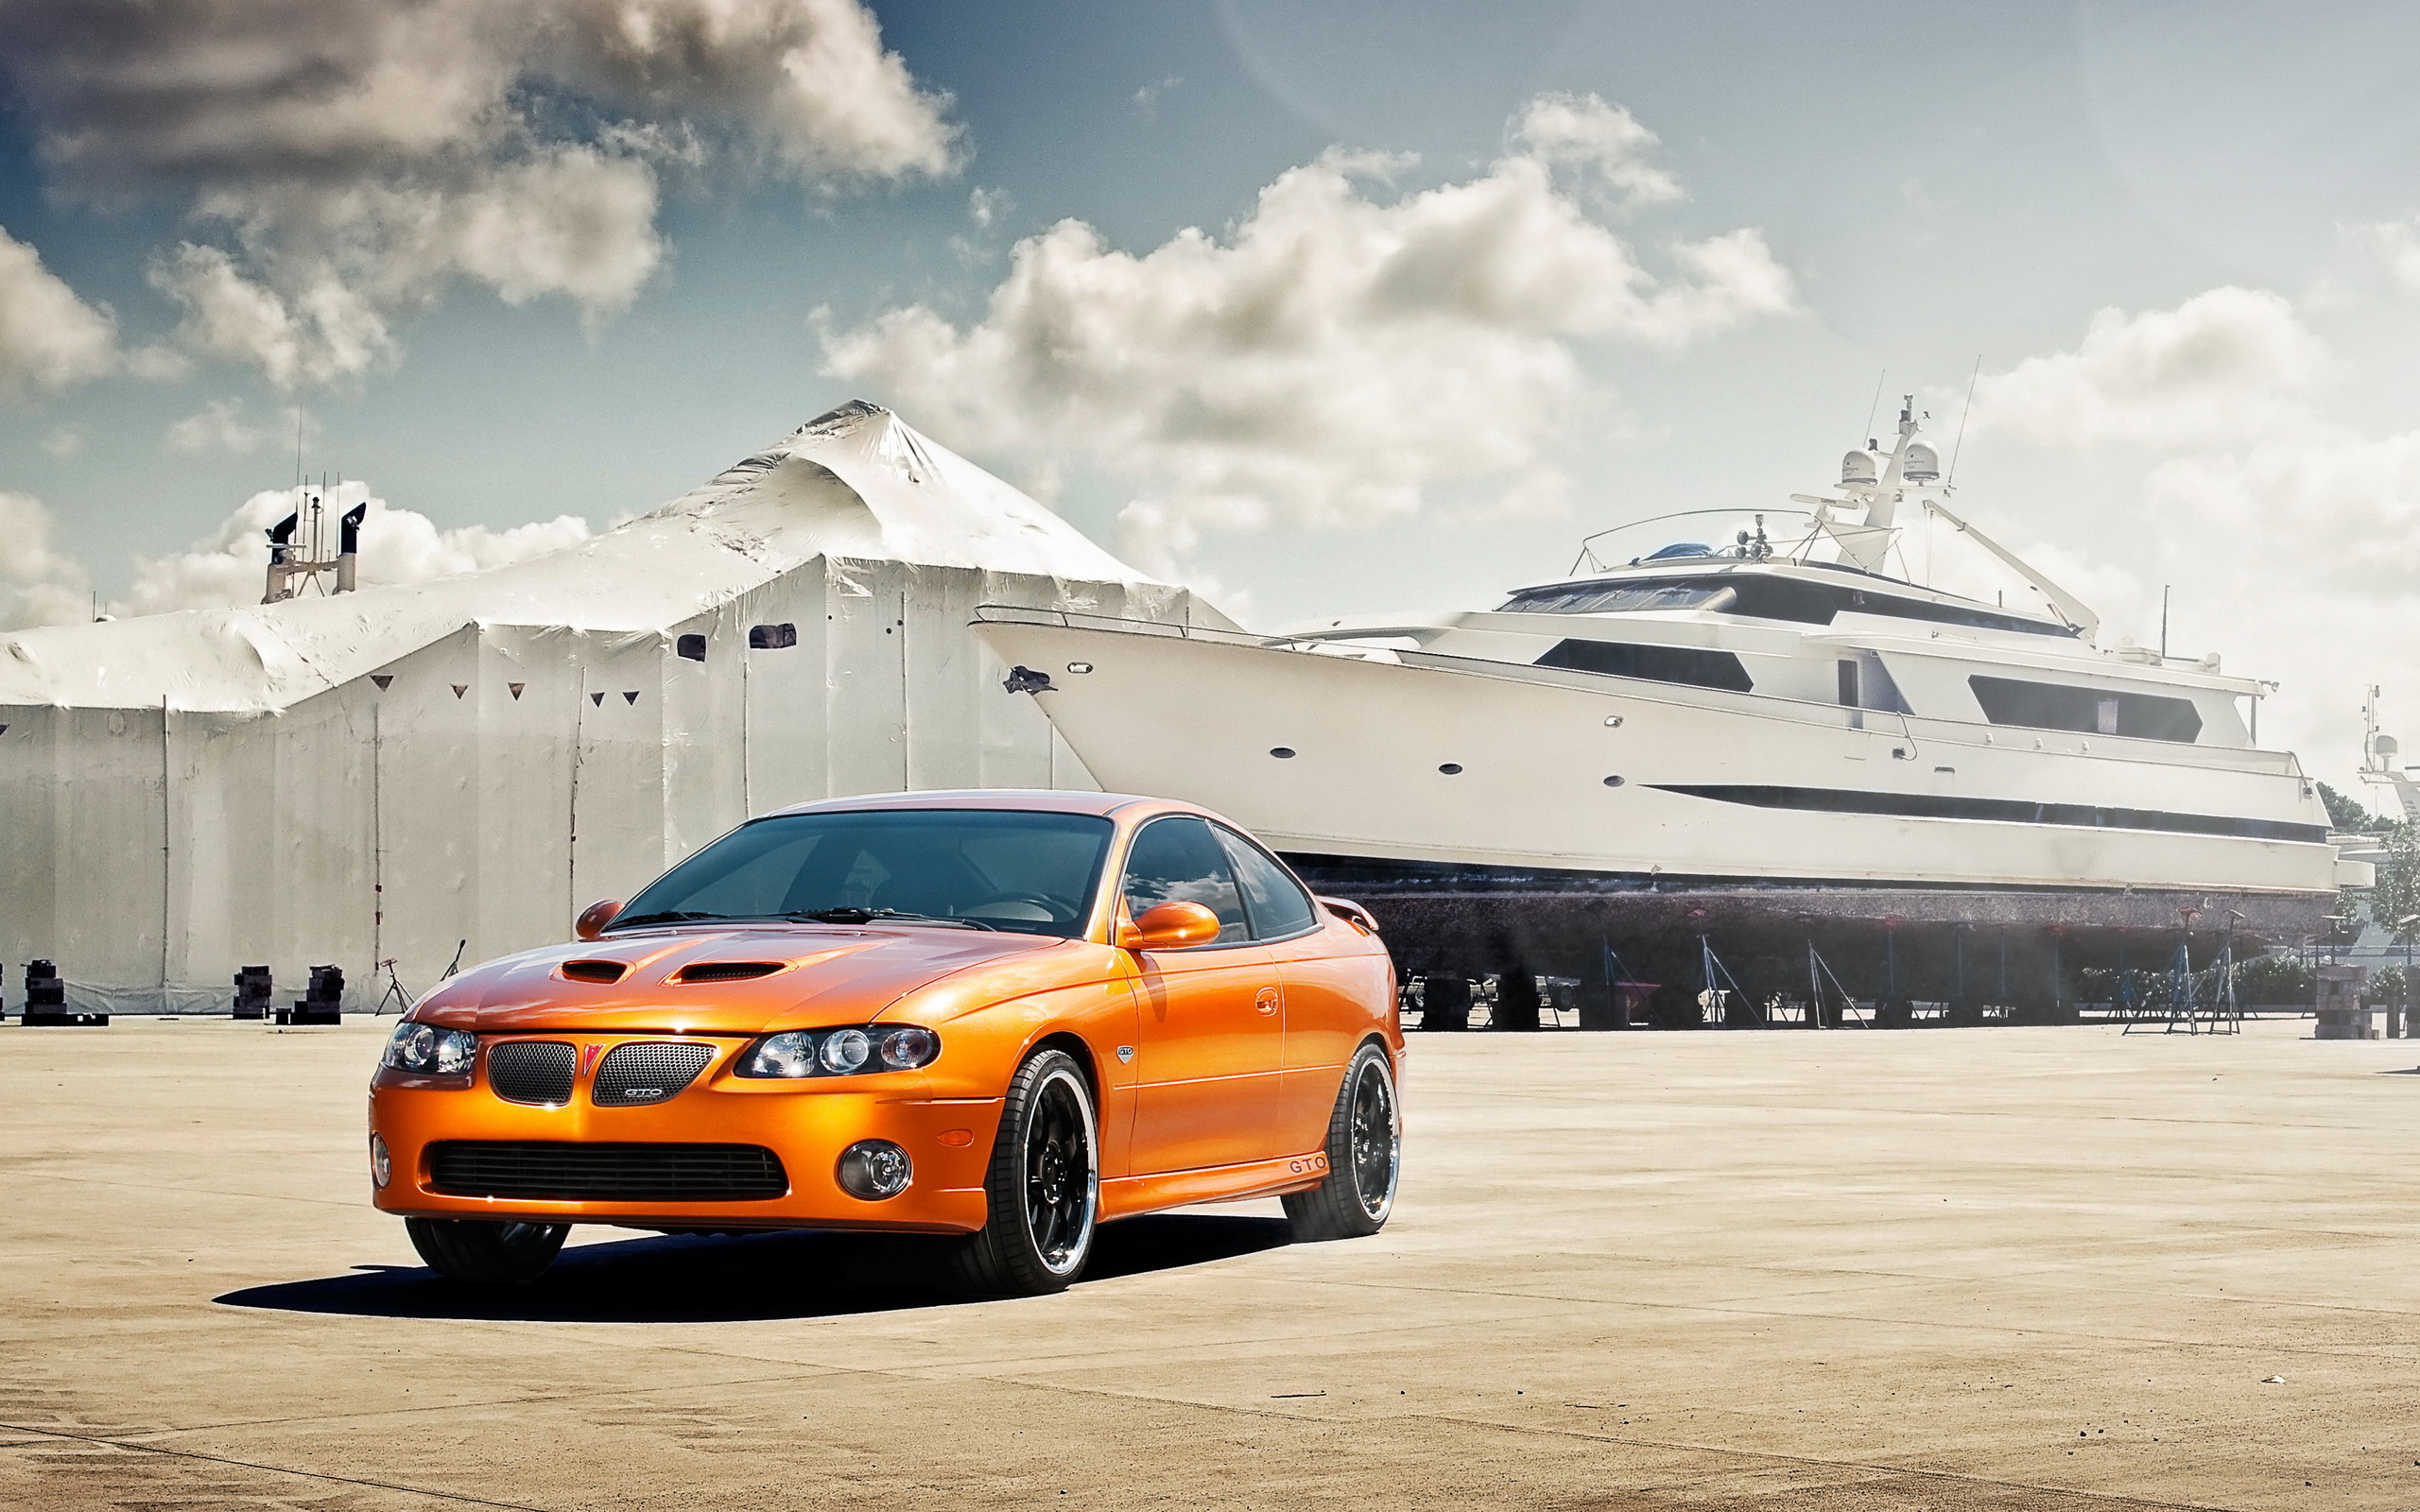 Pontiac GTO wallpapers and images   wallpapers pictures photos 2560x1600